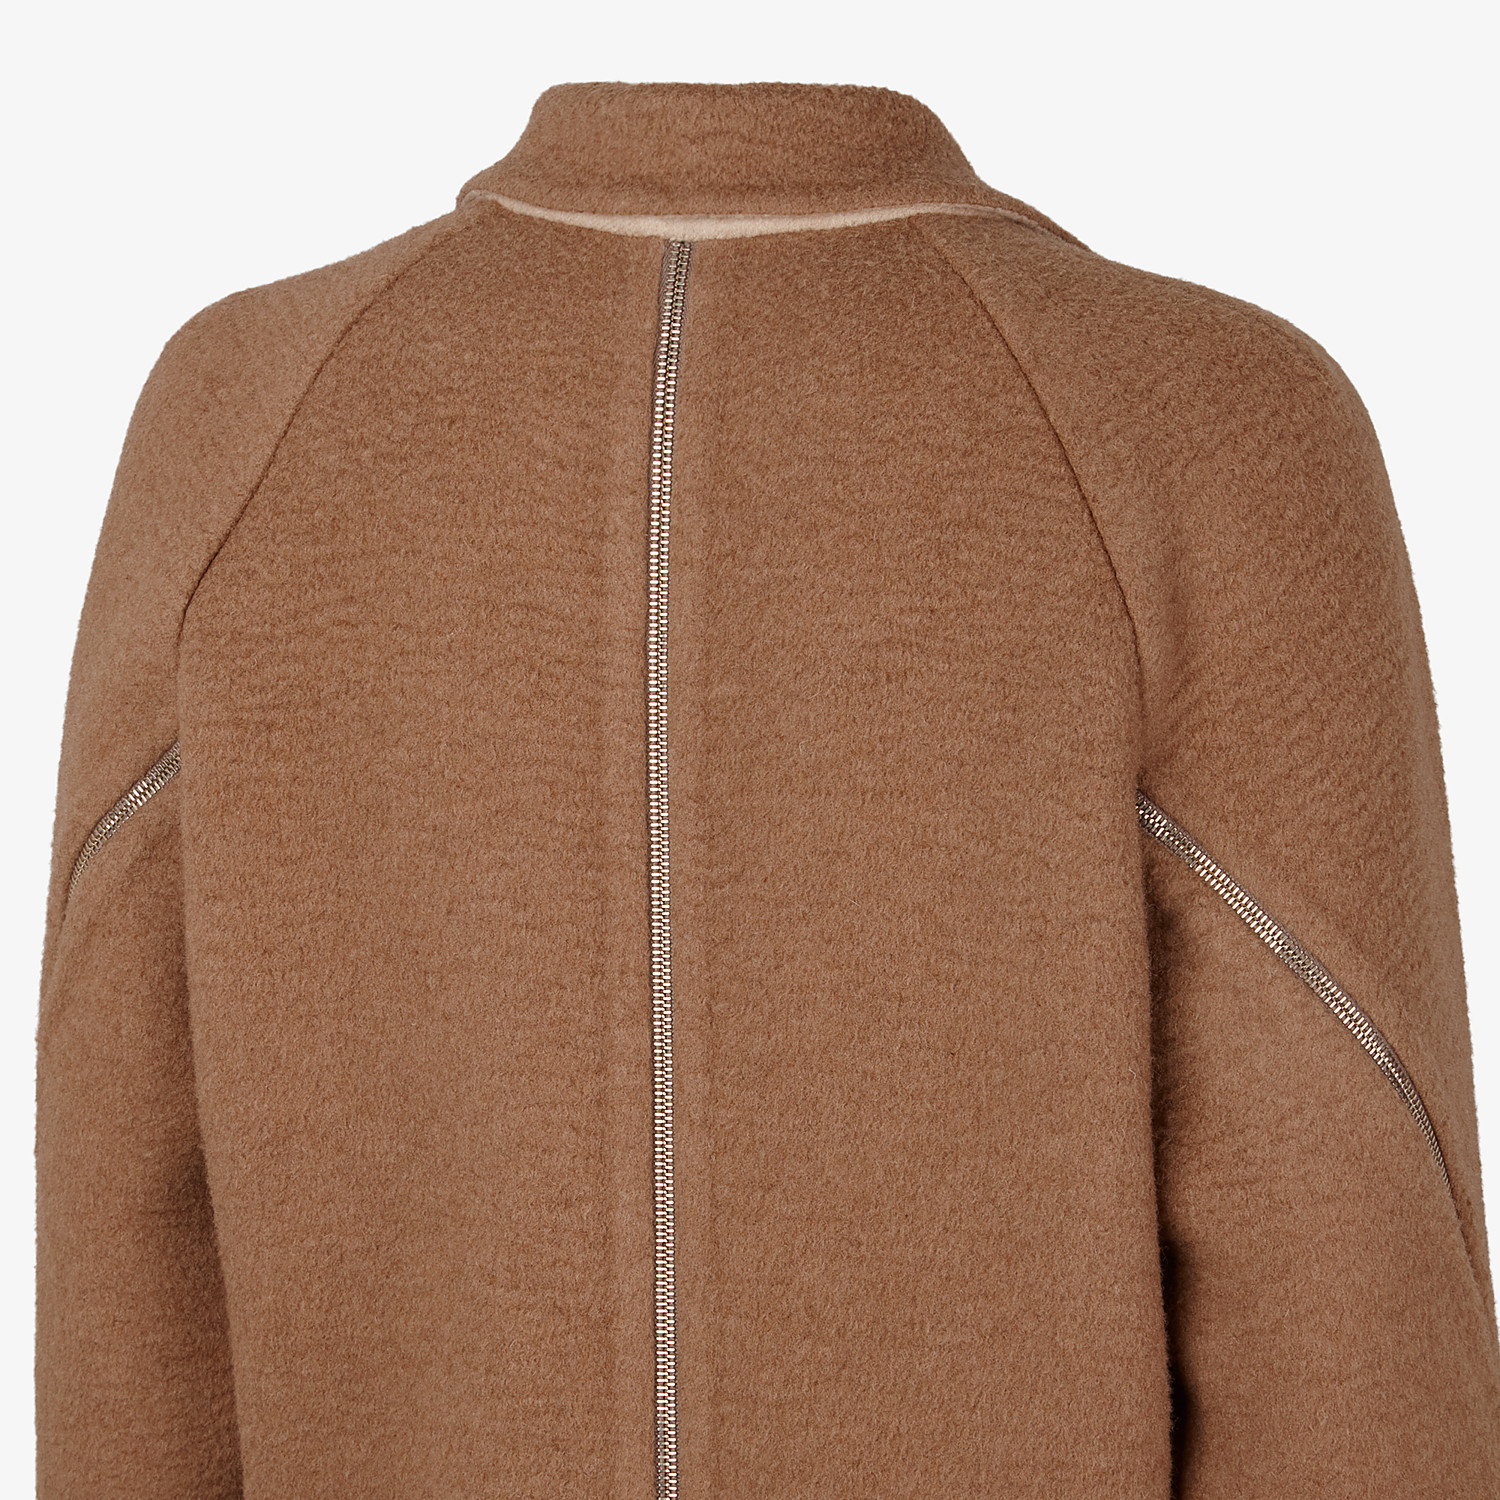 FENDI COAT - Beige camel coat - view 3 detail